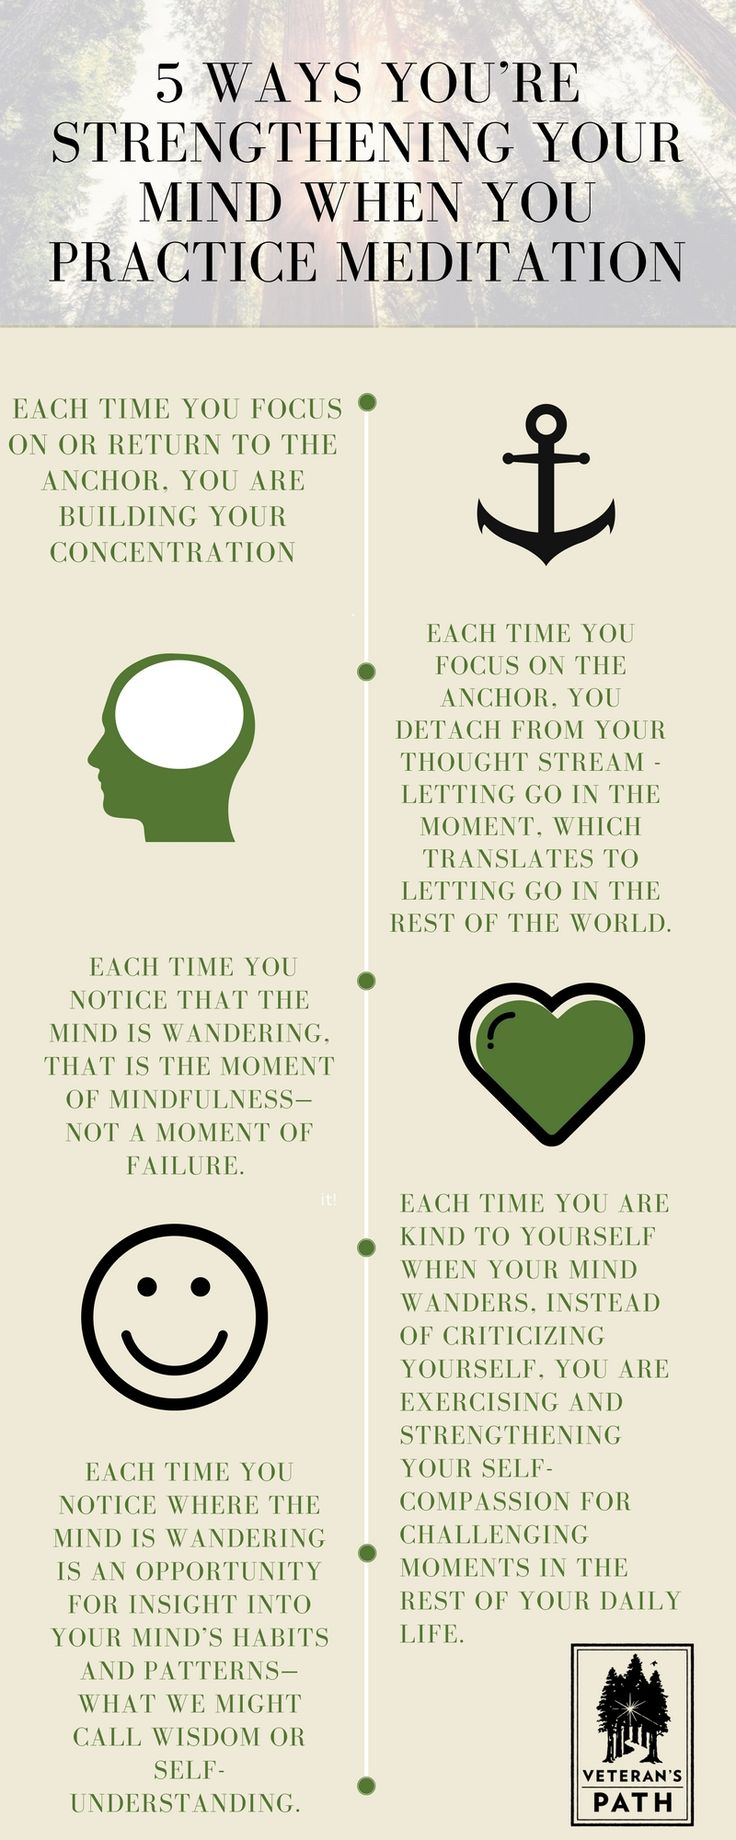 5 ways to strengthen your mind when you practice meditation.   veterans // meditation // mindful // mindfulness // journey forward // vets // military // usmc // usn // usaf // us army // uscg // army // army strong // Marines // marine corps // us marine corps // navy // us navy // air force // coast guard // military life // freedom // marine // veteran // armed forces // support our troops // inspiration // healing from trauma // pts // mst // resilience